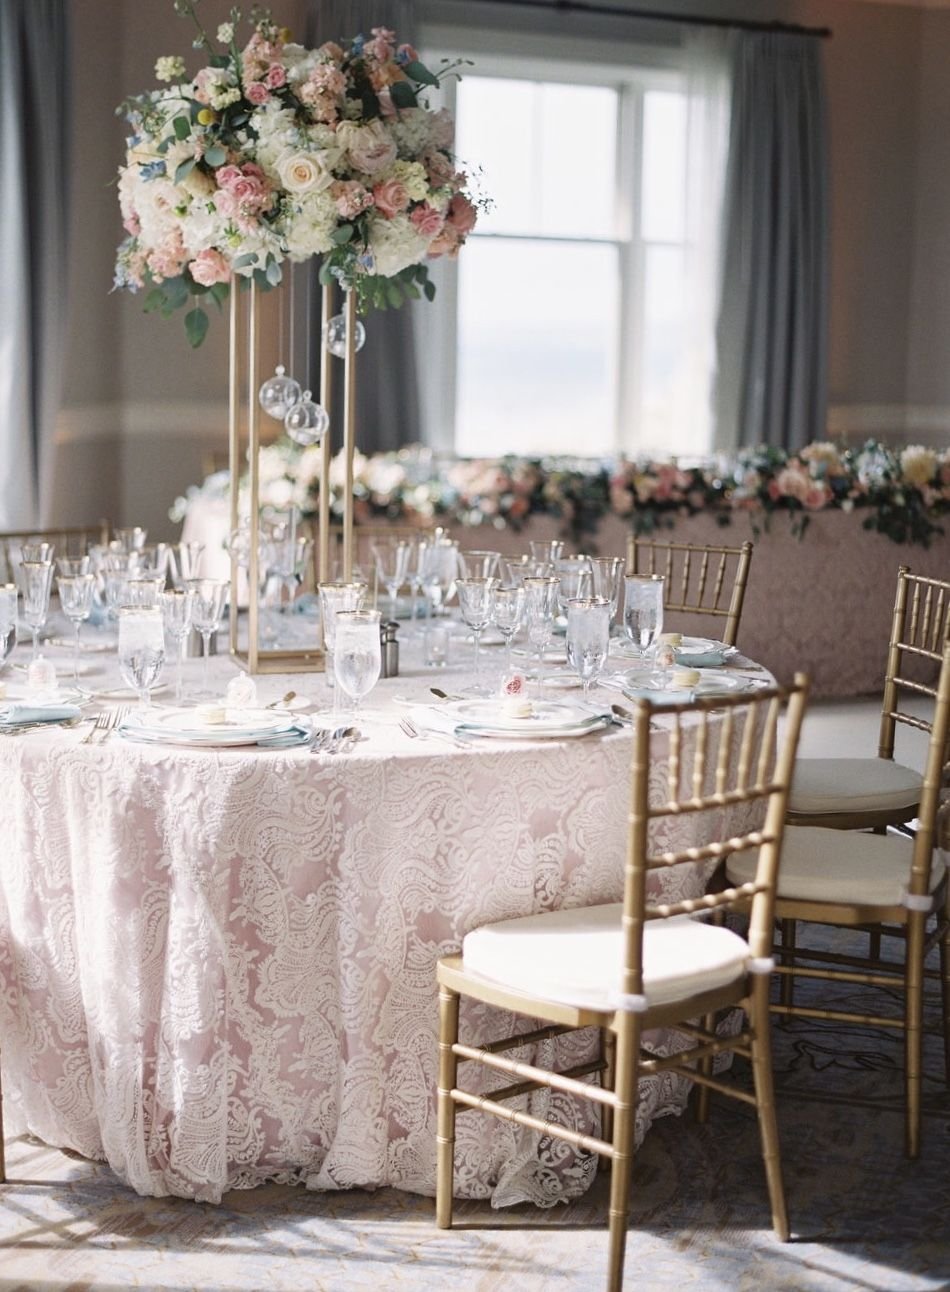 Pink And Blue Themed Table Setting For Wedding Banquet At Ritz Carlton Half Moon Bay Event Planning Stylin Wedding Table Settings Table Settings Venue Decor